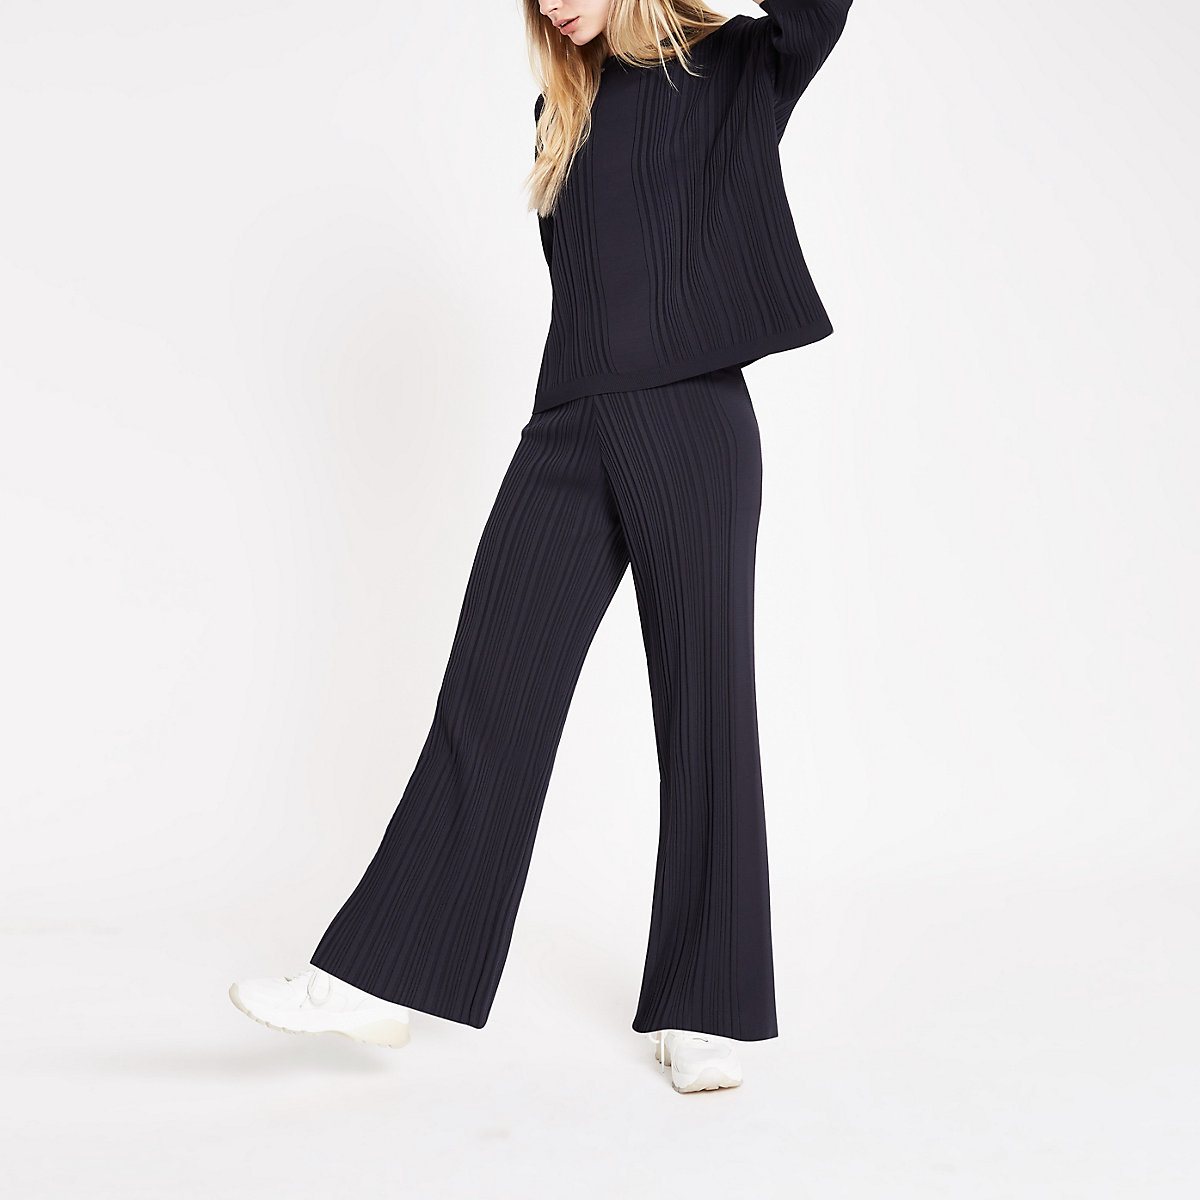 Navy ribbed trouser set